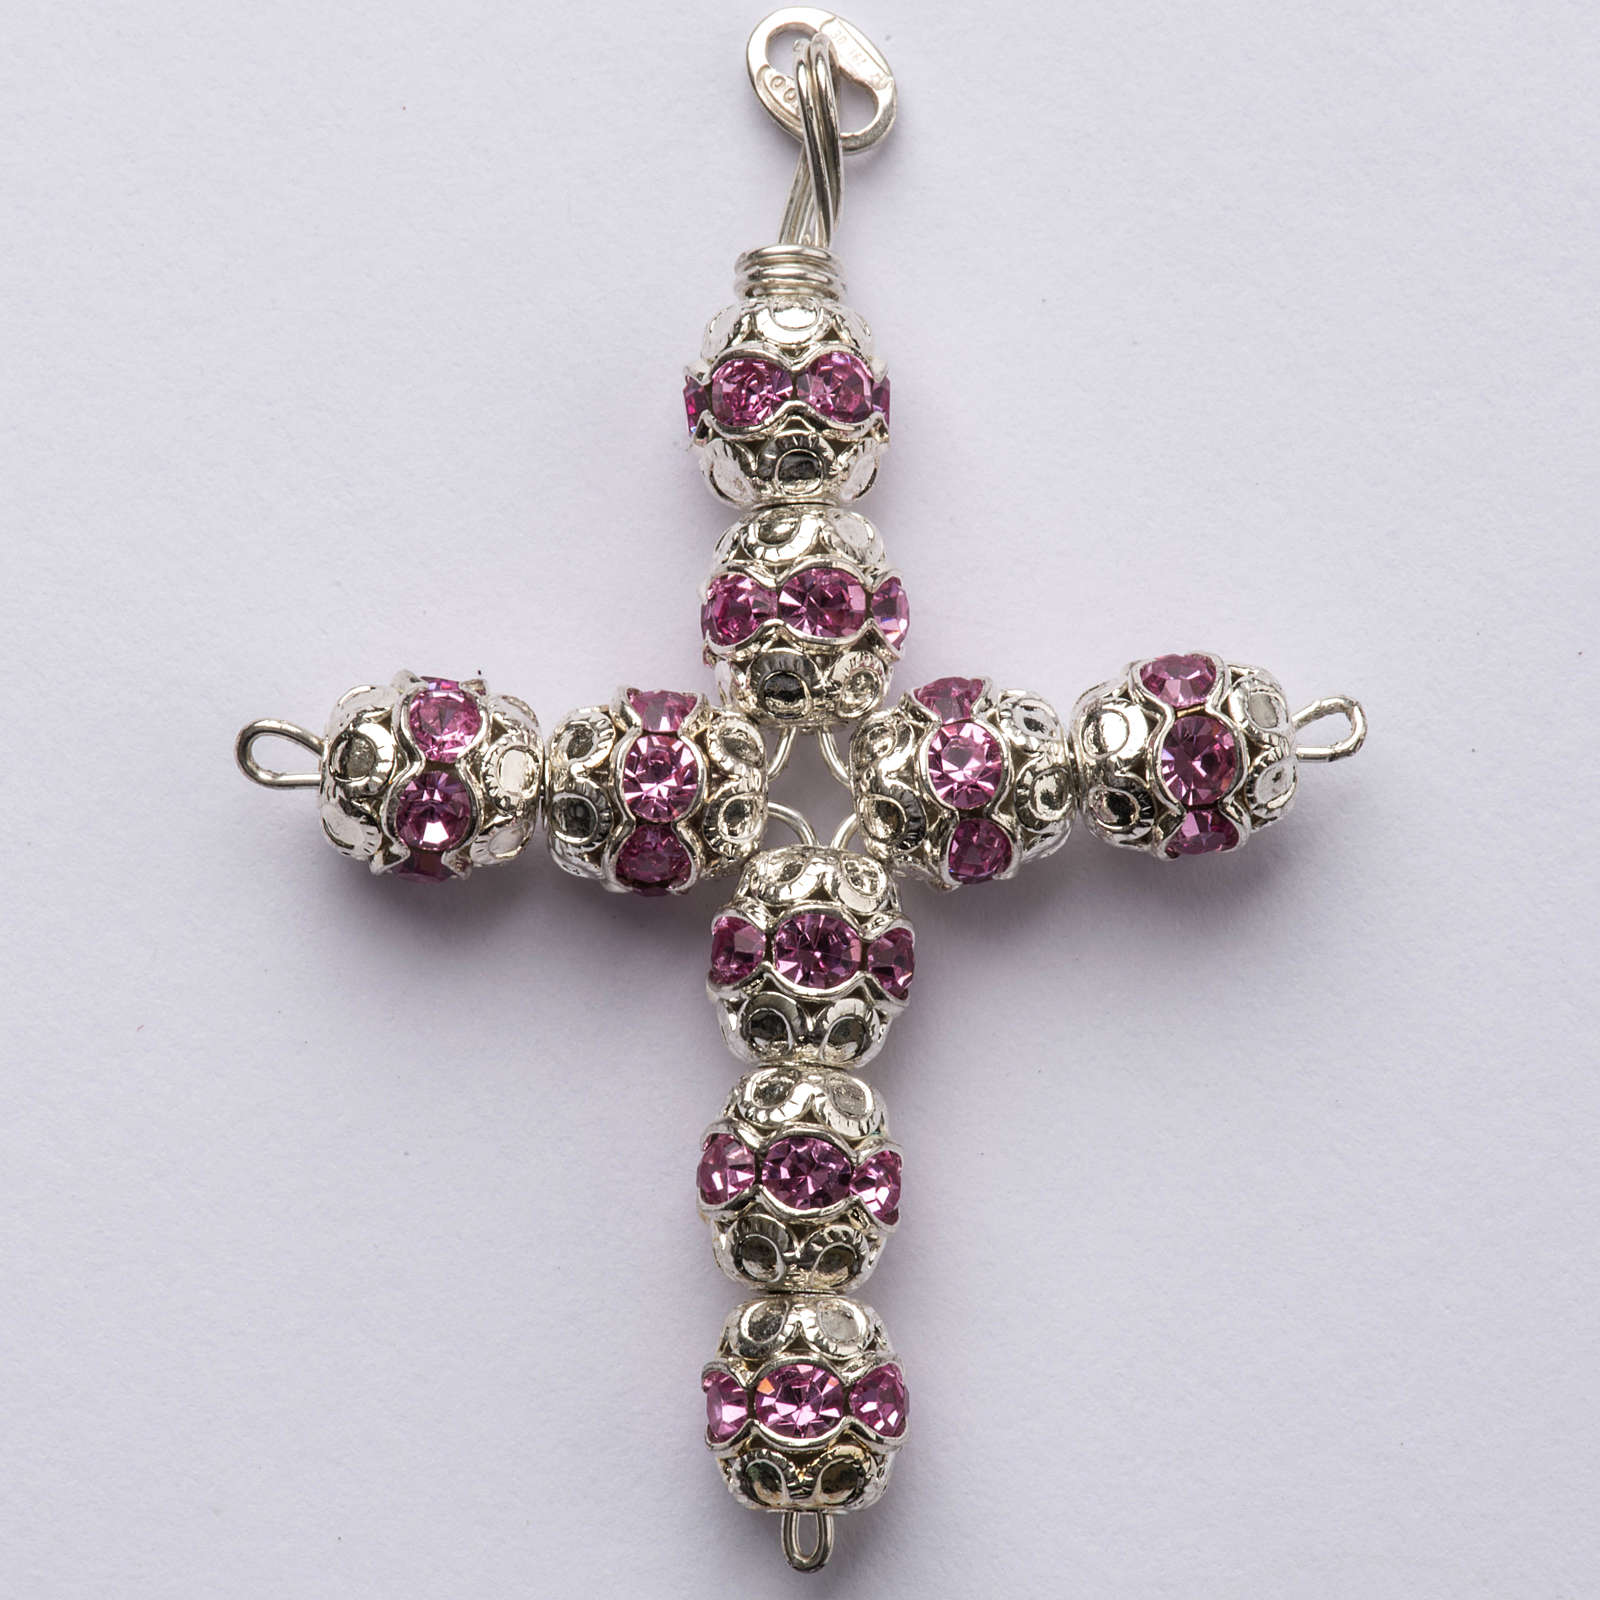 Pendant cross, pink Swarovski diam. 0,24in with split pins 4